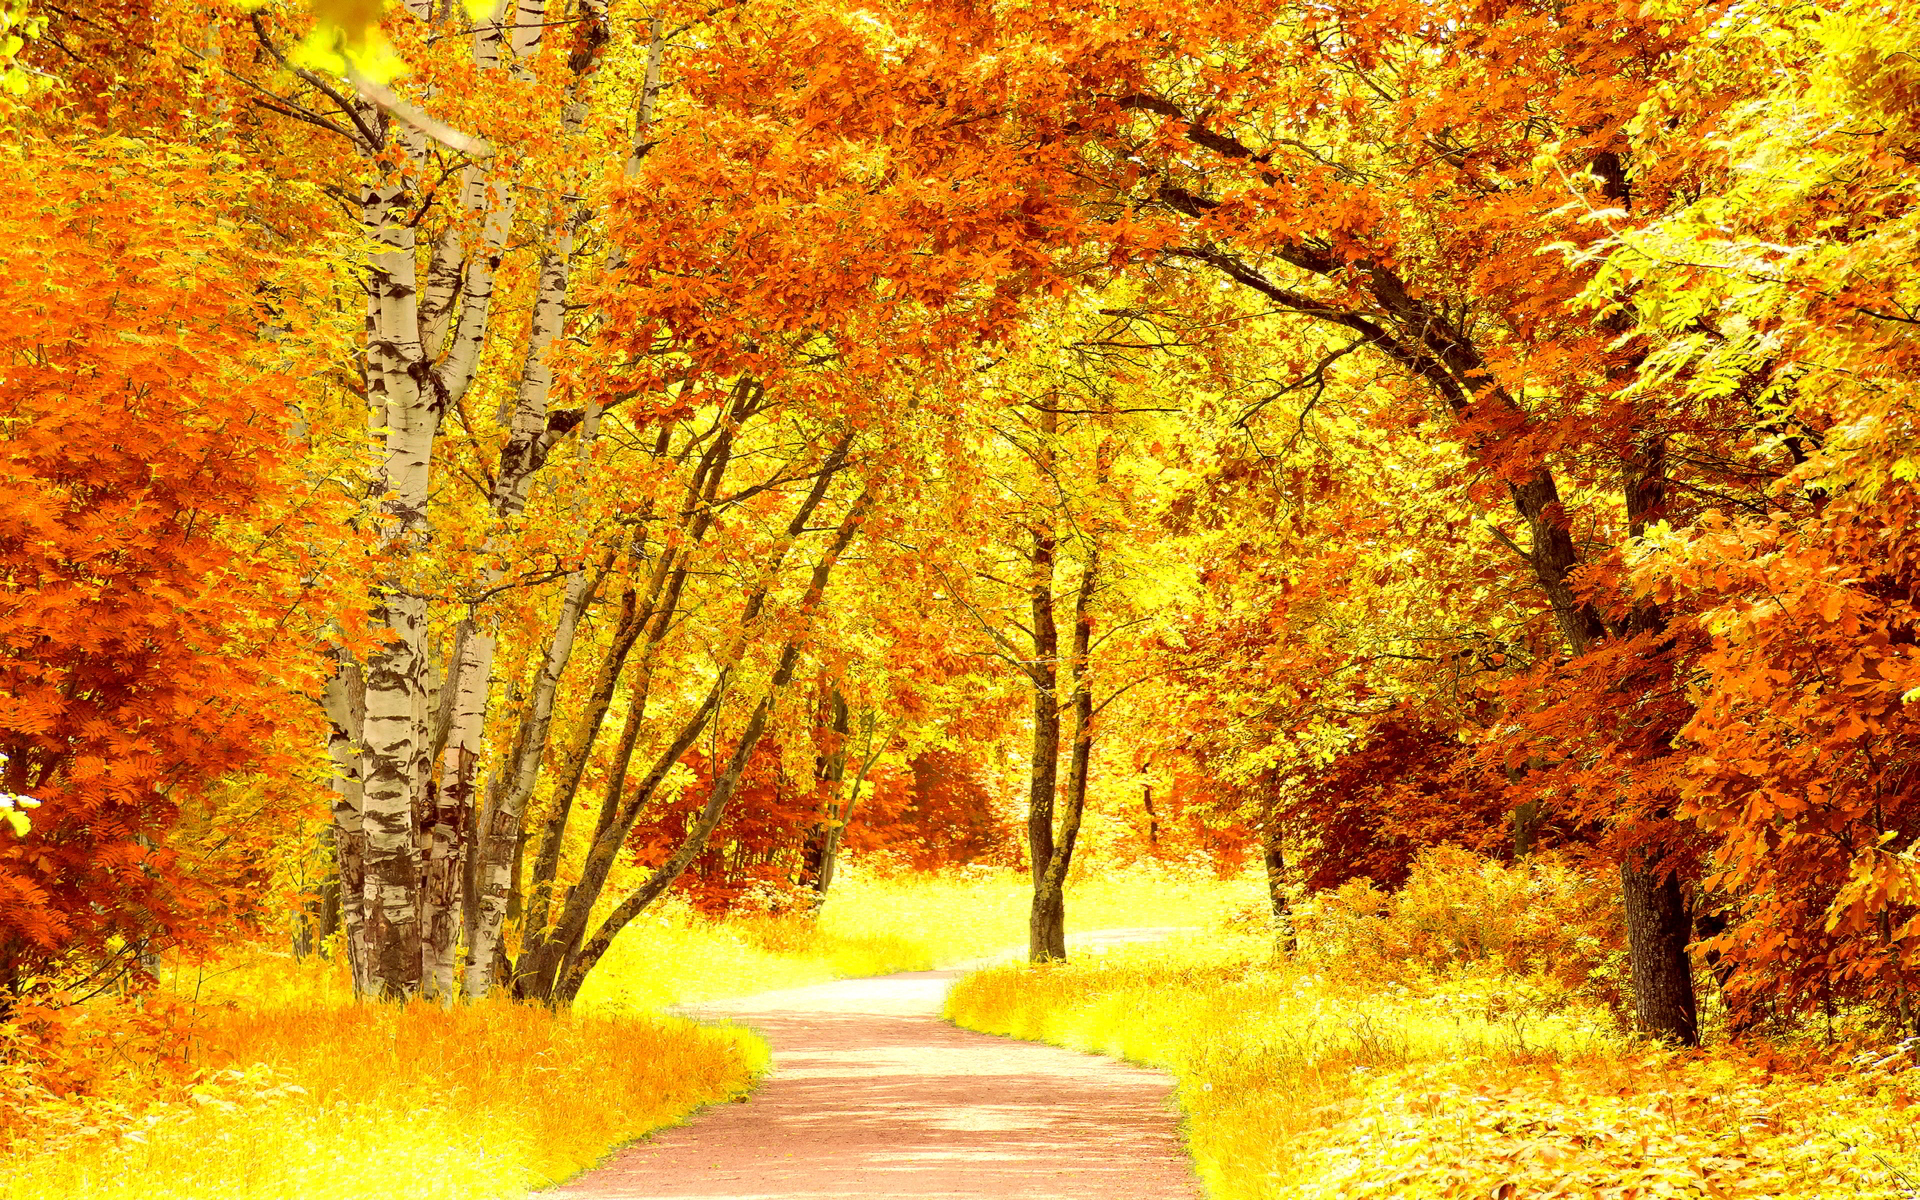 Red yellow autumn scenery